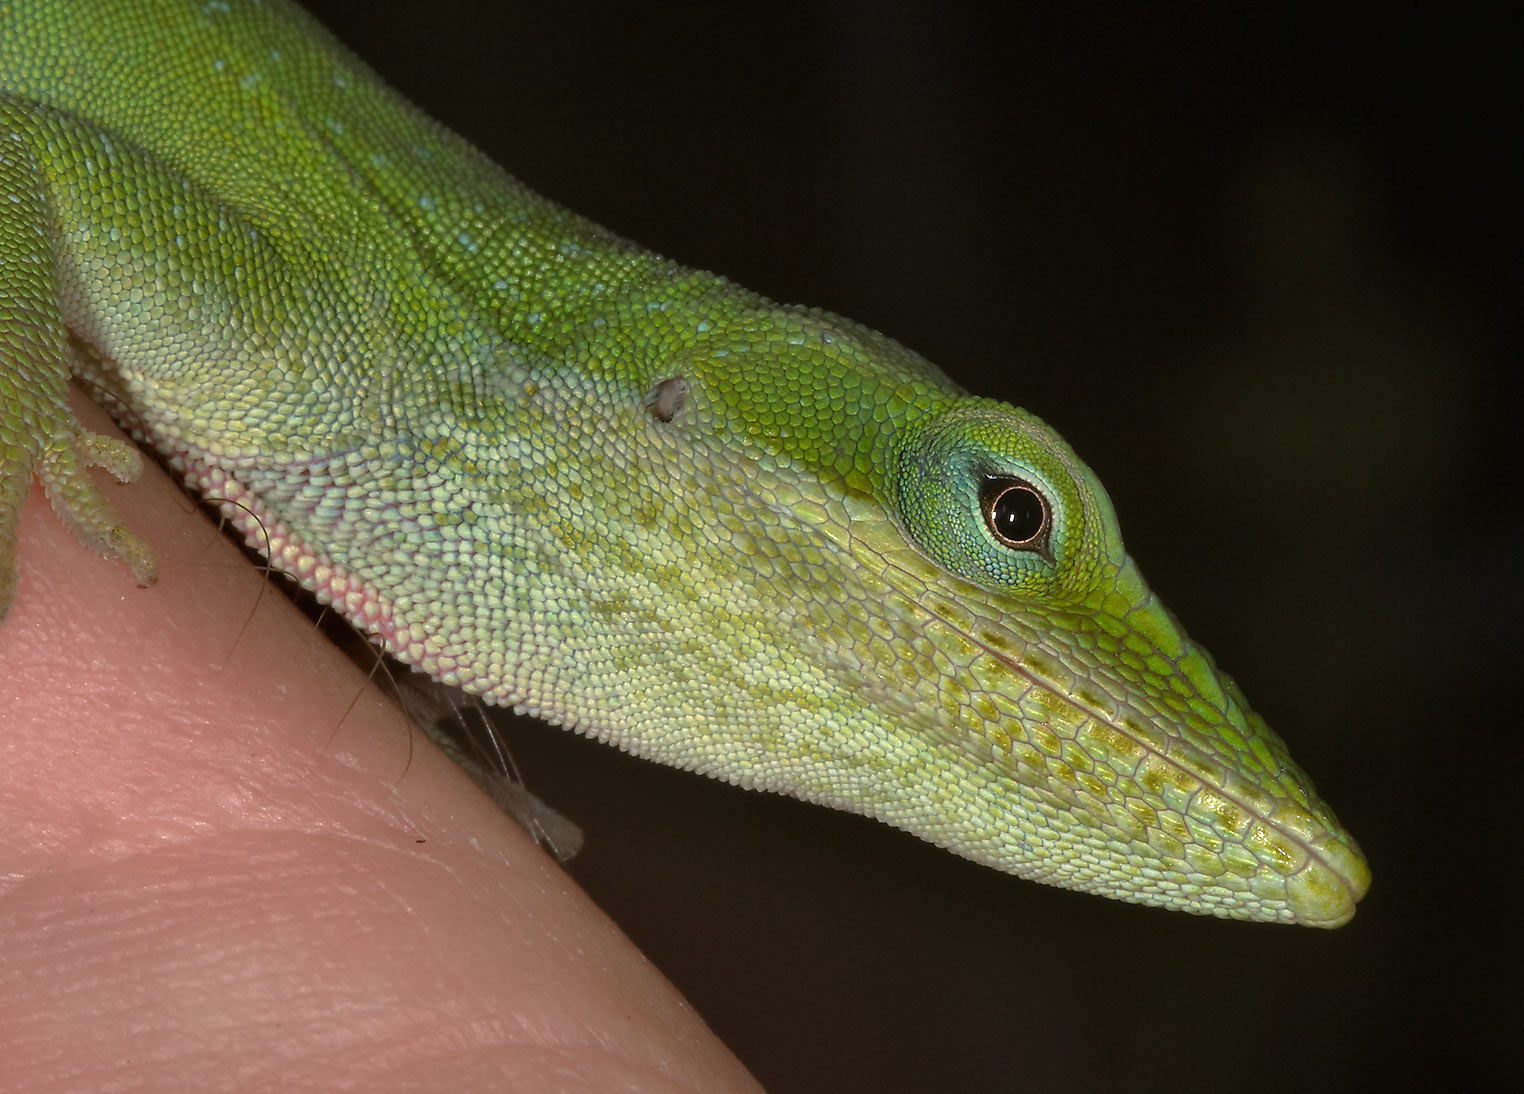 Tame green anole (Anolis carolinensis) on hand in...M University. College Station, Texas